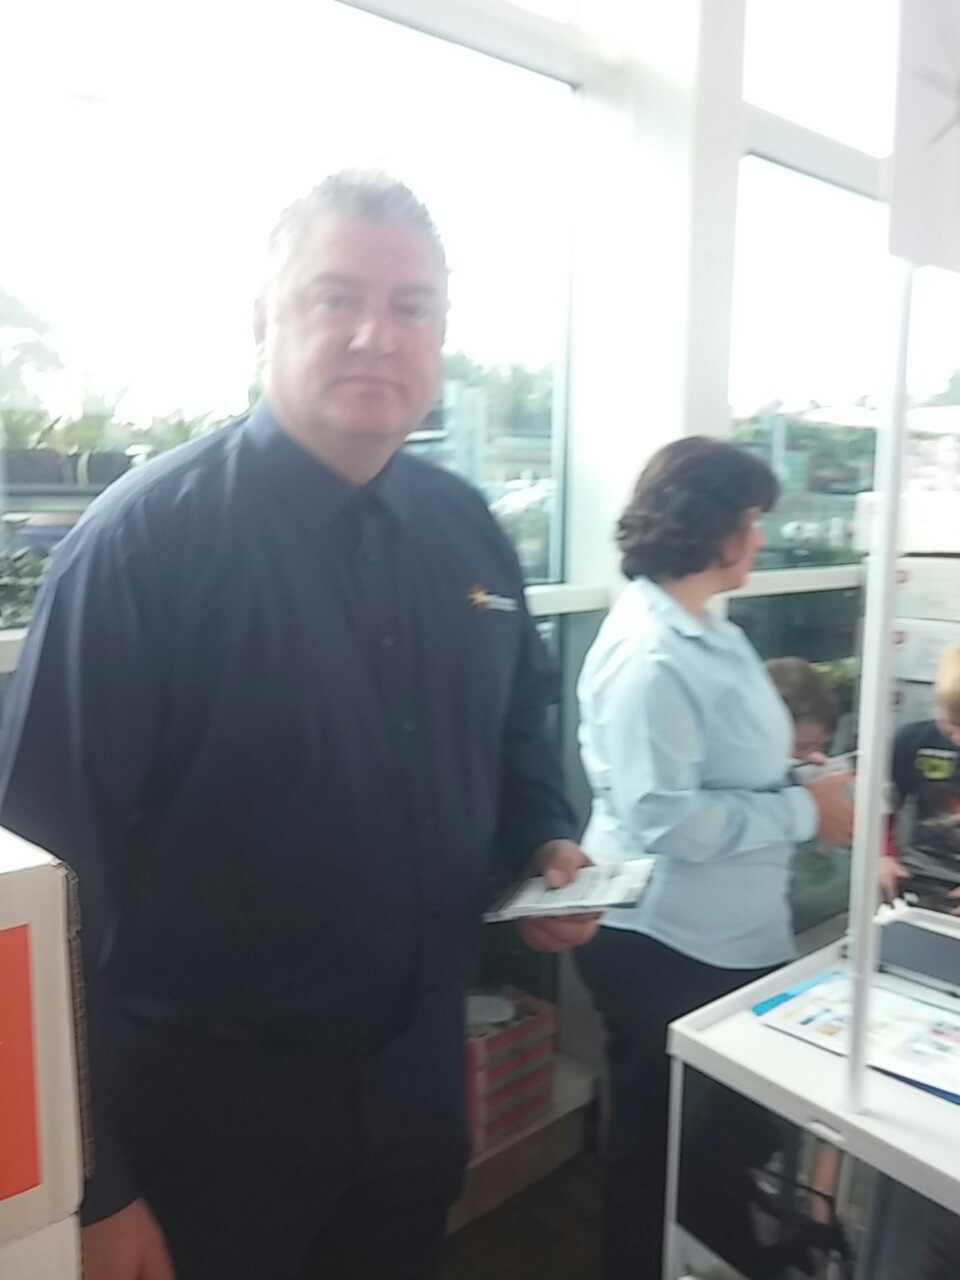 Cardiff, Cardiff - OvenGleamers Cardiff North Promotion with Anthony Sellick the Cardiff local. Franchiser